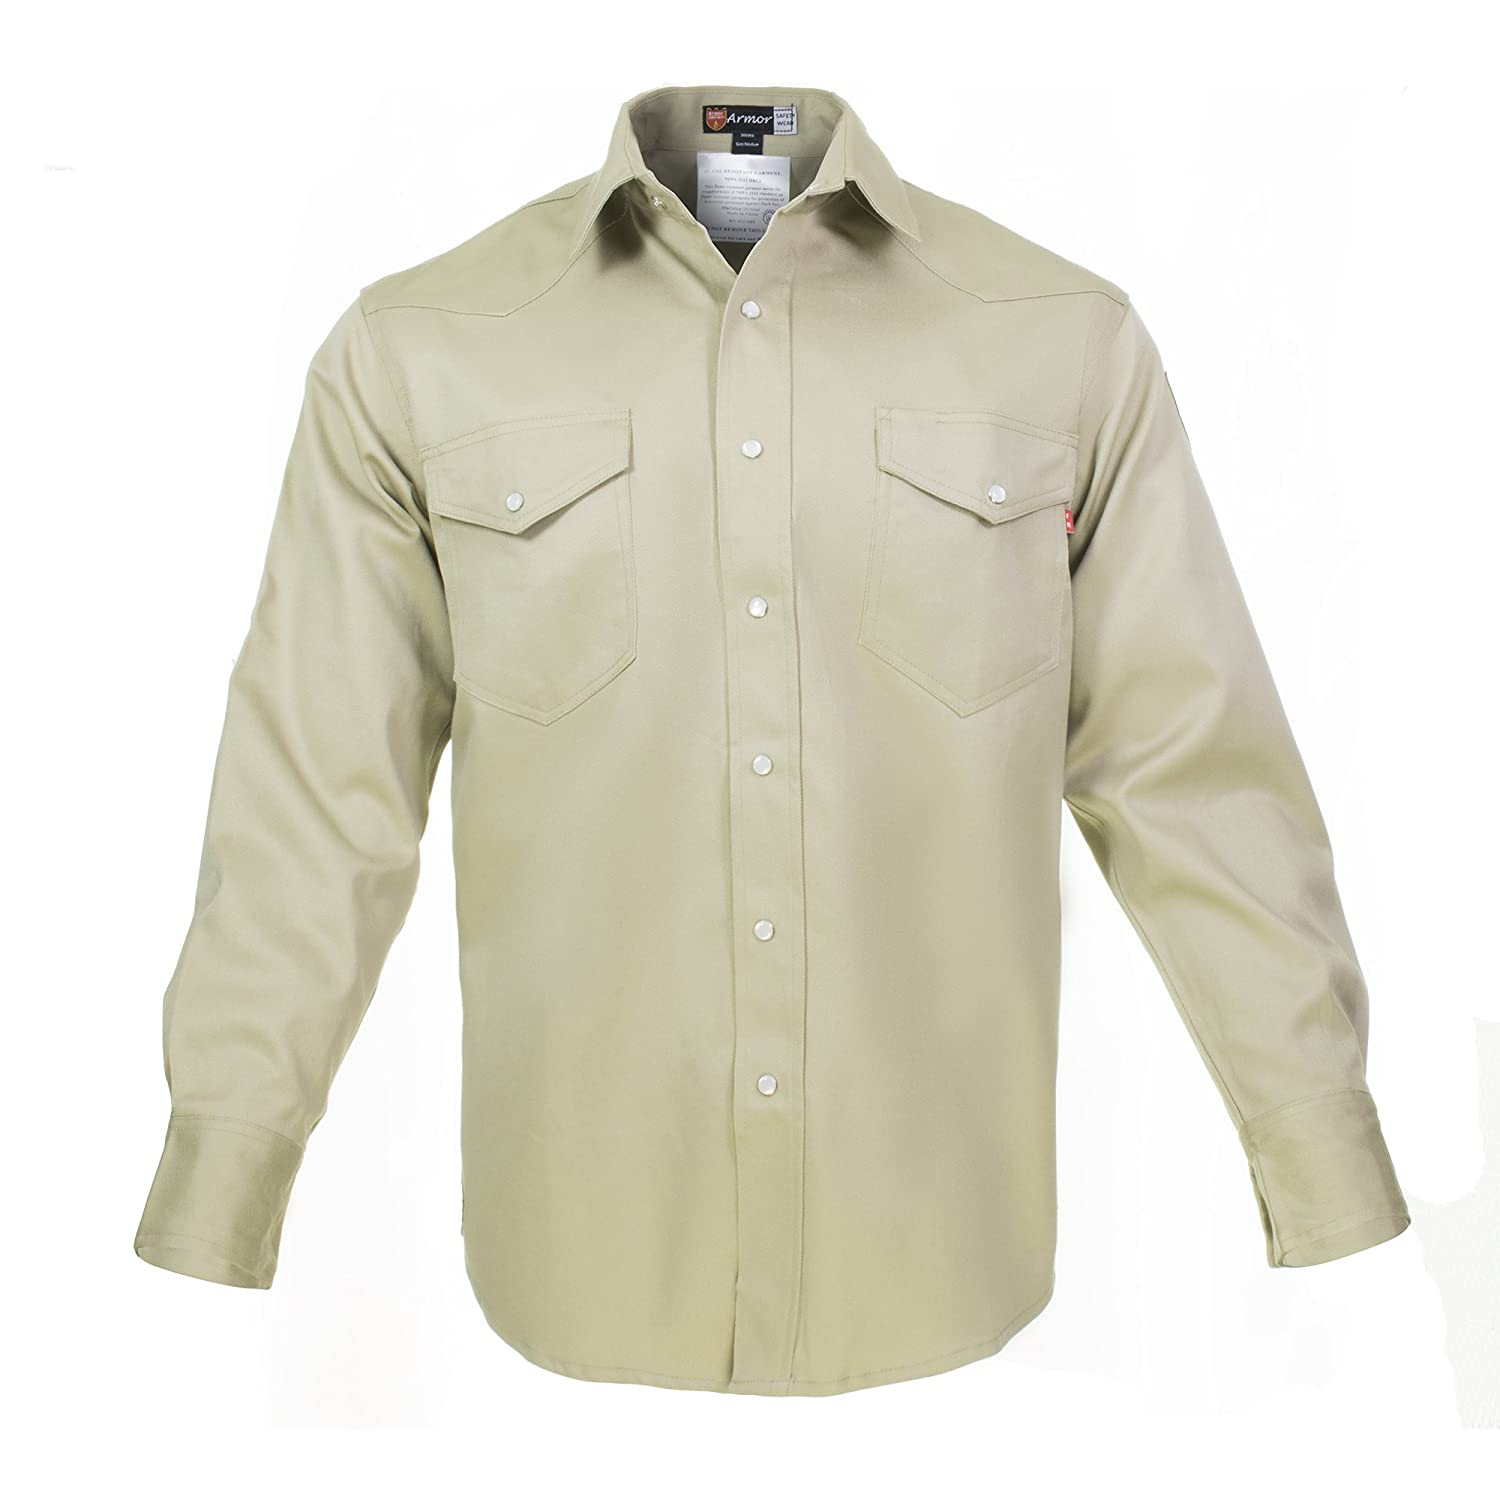 Just In Trend Flame Resistant FR Shirt - 100% C - Light Weight